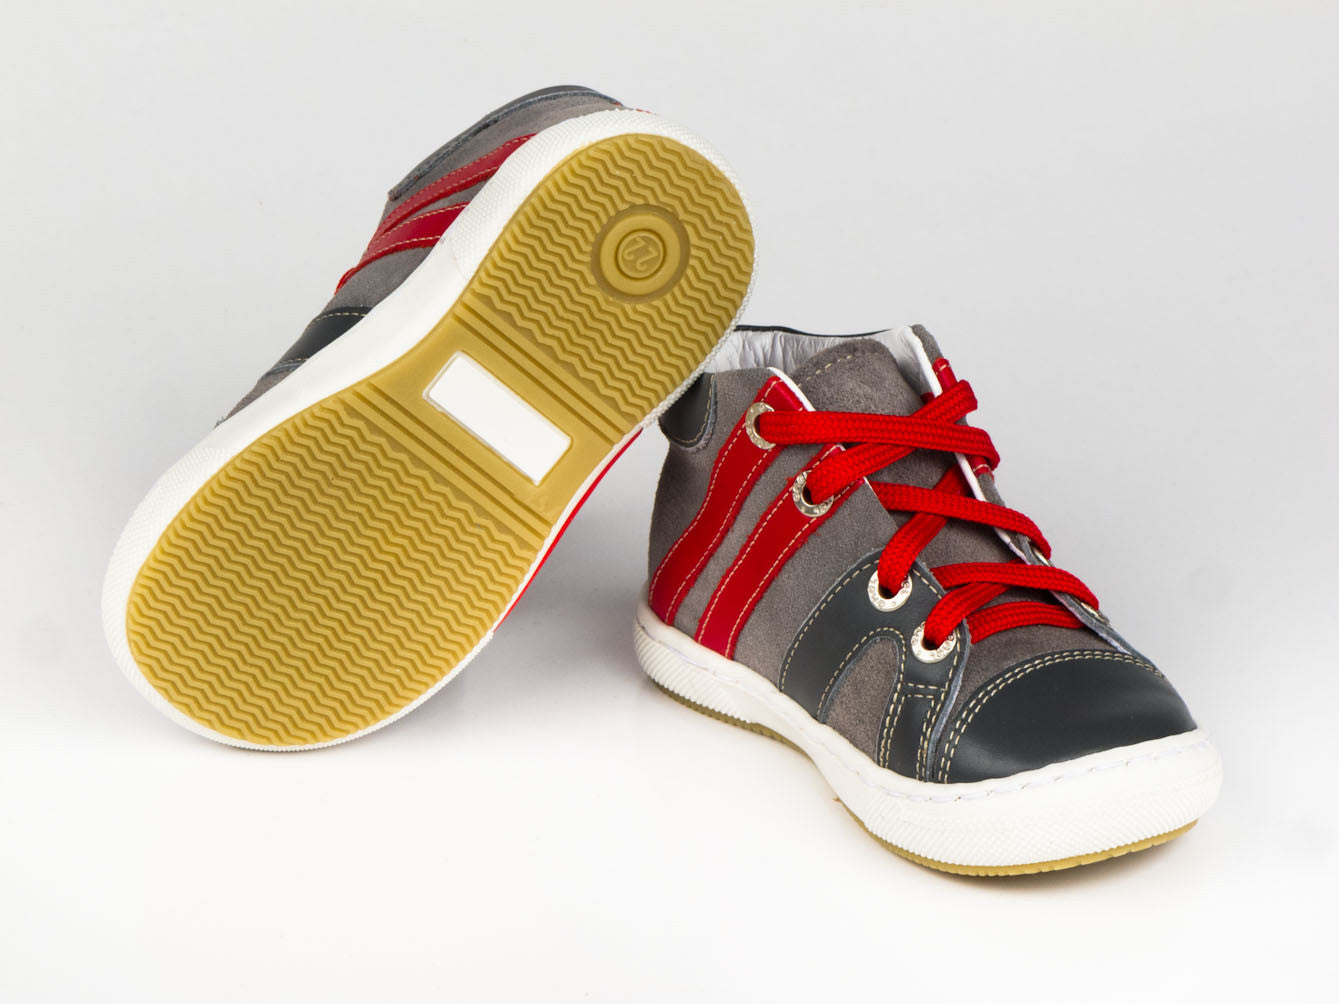 c3b8f83c6 Emel Grey/Red Leather/Suede Lace Up Trainers - Emel Shoes UK